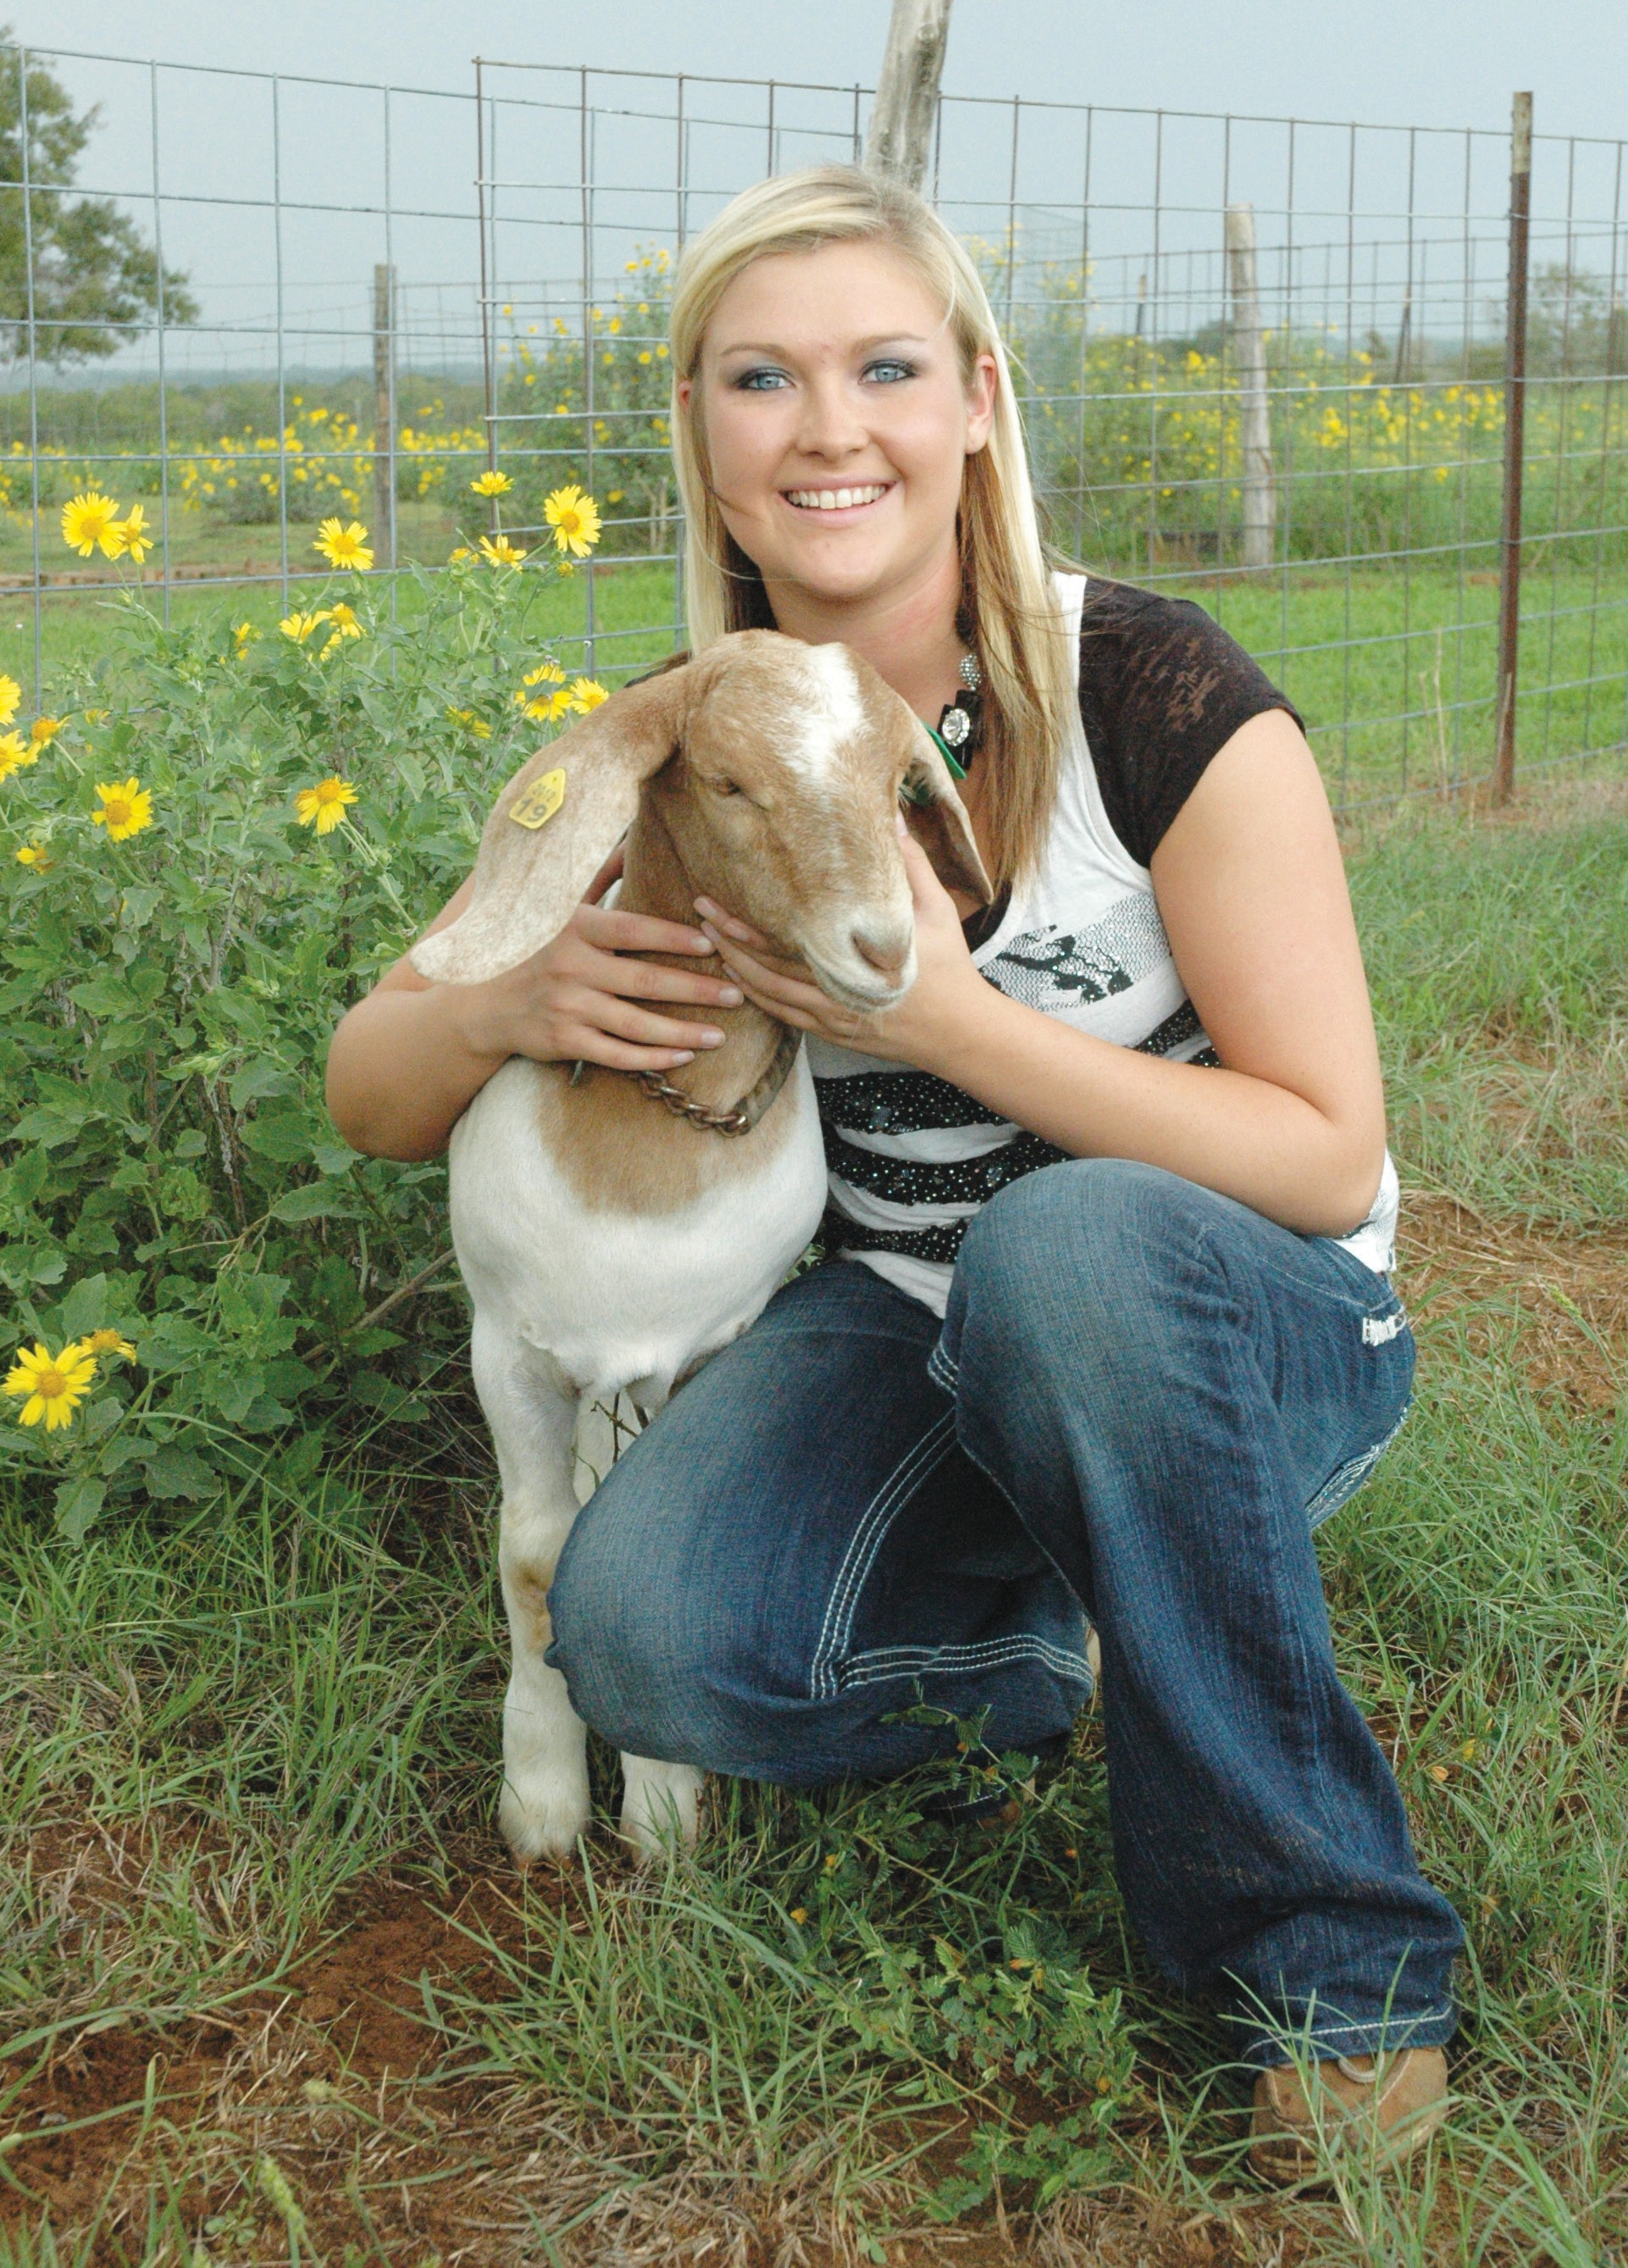 """Kayla Wilkins, a senior at Poteet High School and FFA President, is getting her show goat """"Spanky"""" ready for the Atascosa County Fair this Saturday and Sunday, October 6 and 7. A dance featuring Zach Edwards Band with Billy Hanson and the Lone Strangers opening will begin at 7:30. Dance admission is $10.00 at the gate. See story on page 2."""